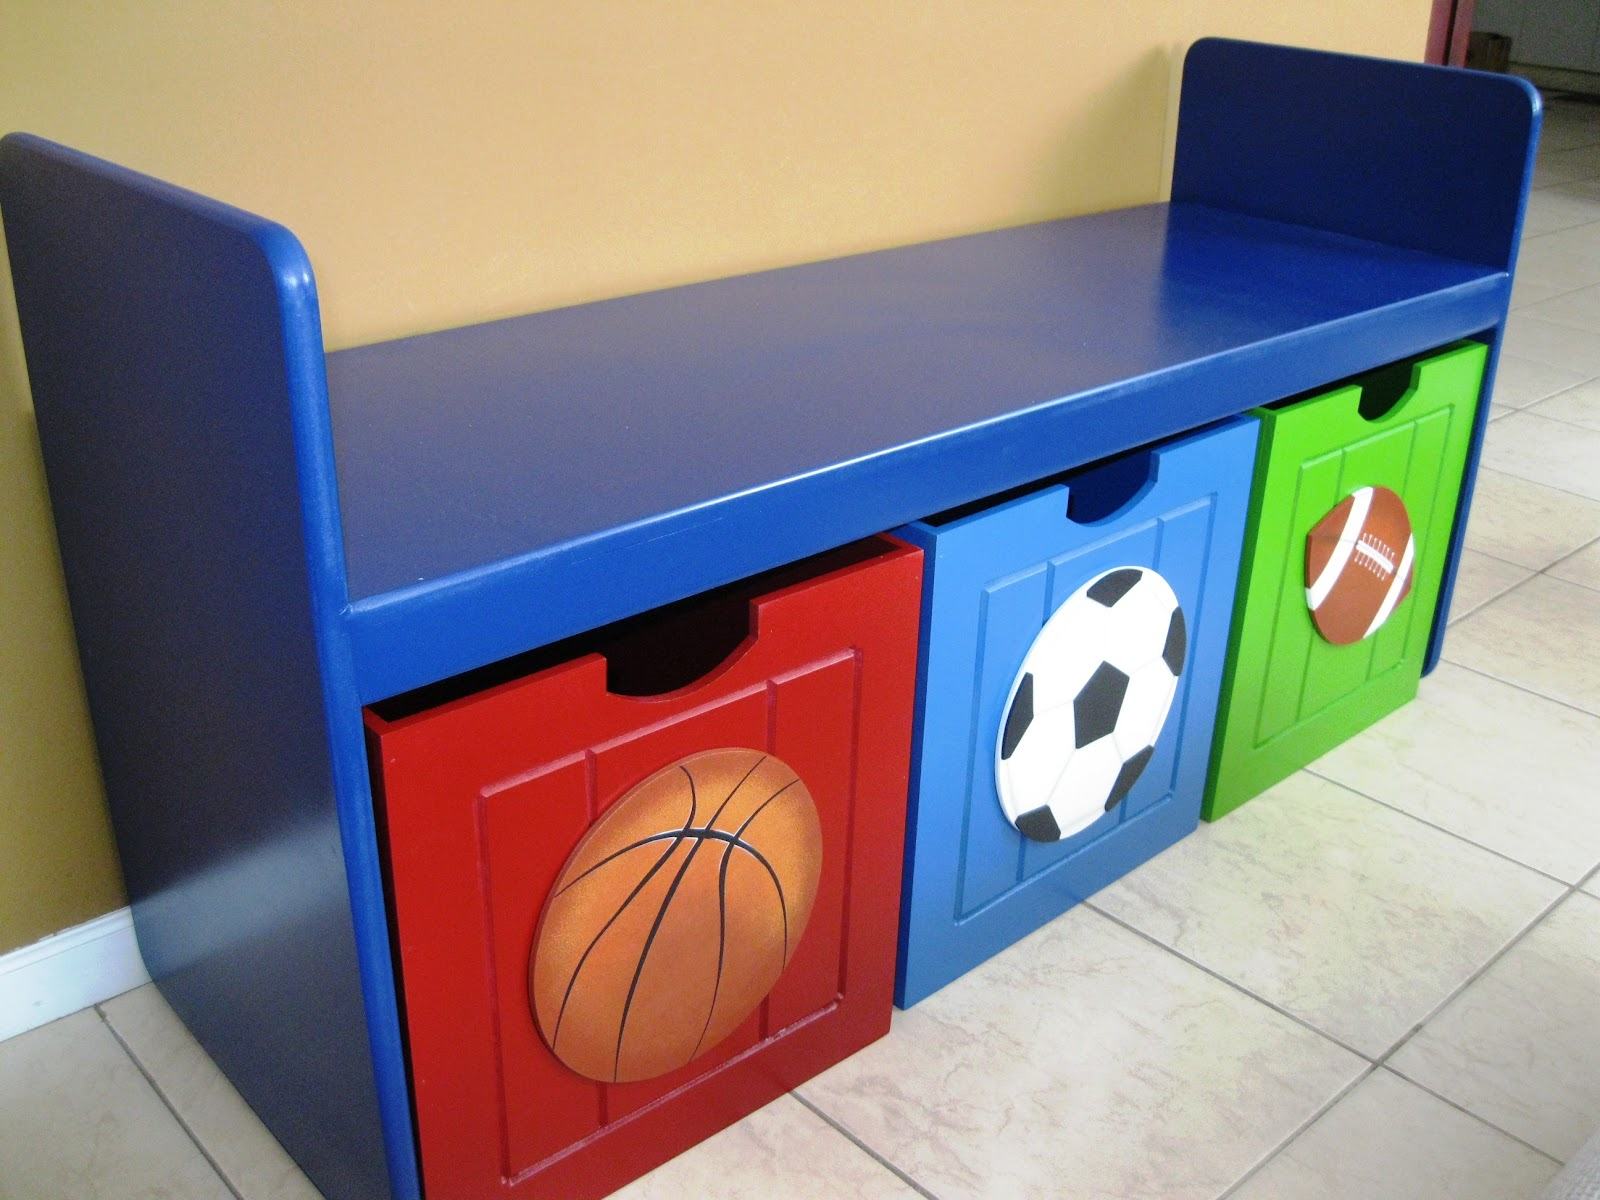 Rums decoracion infantil for Mueble juguetero